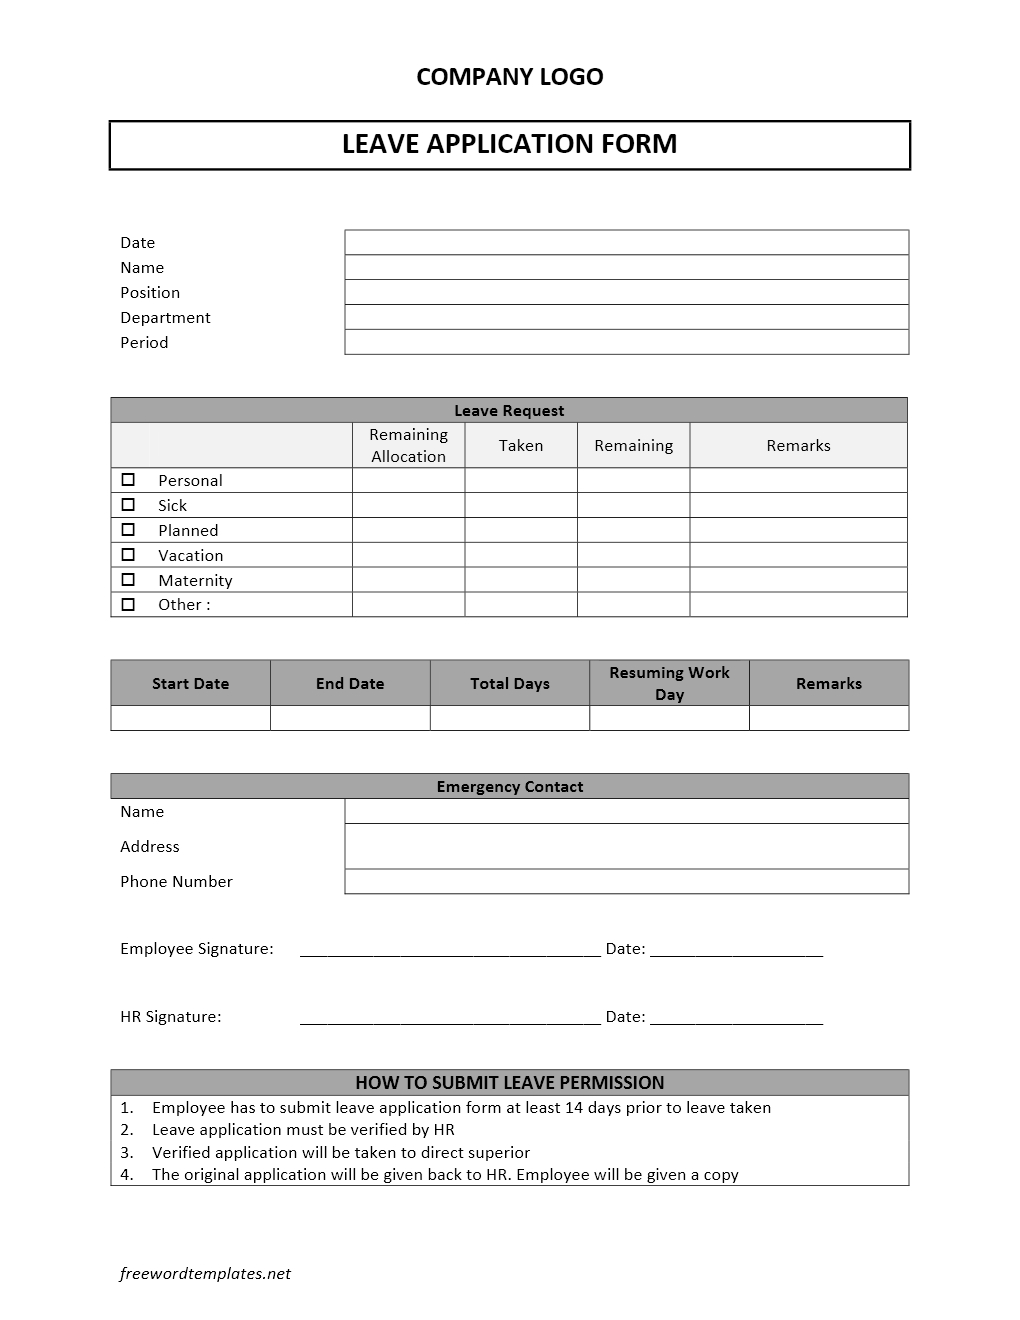 leave request form template leave request template - Delli.beriberi.co